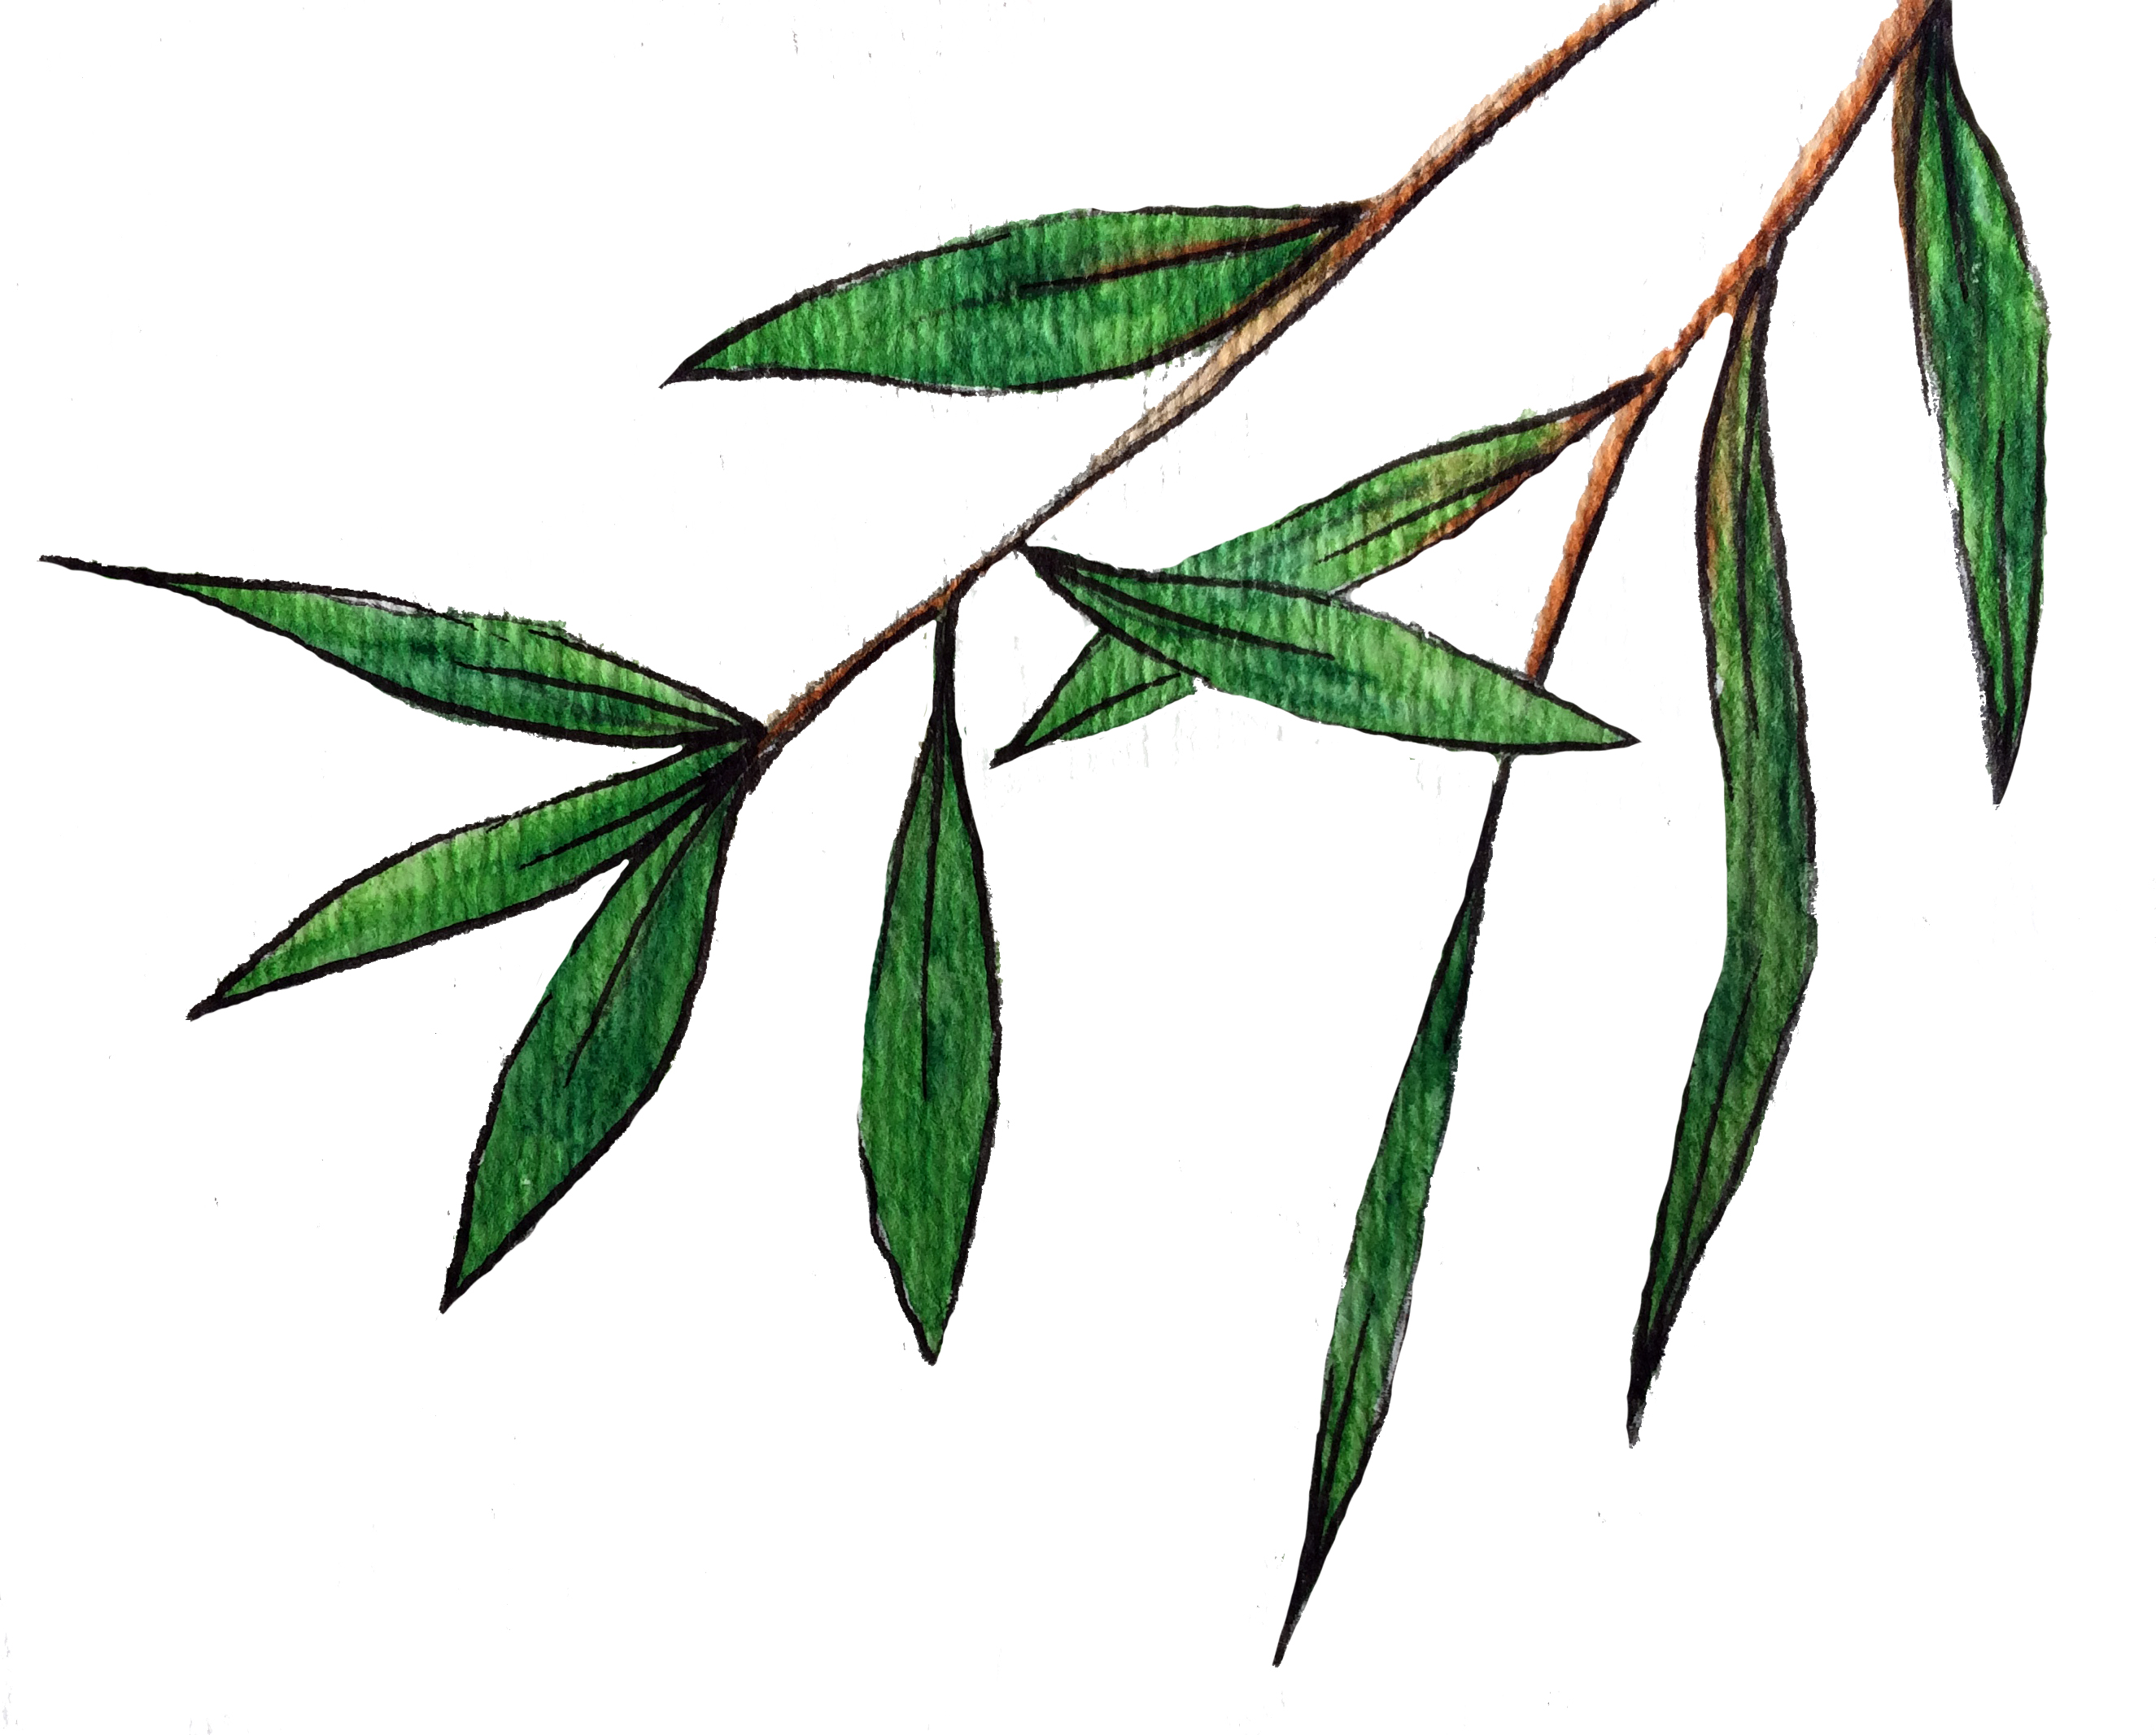 Bamboo Love | Short Story by Krista Suh | Bamboo Illustration by Aurora Lady